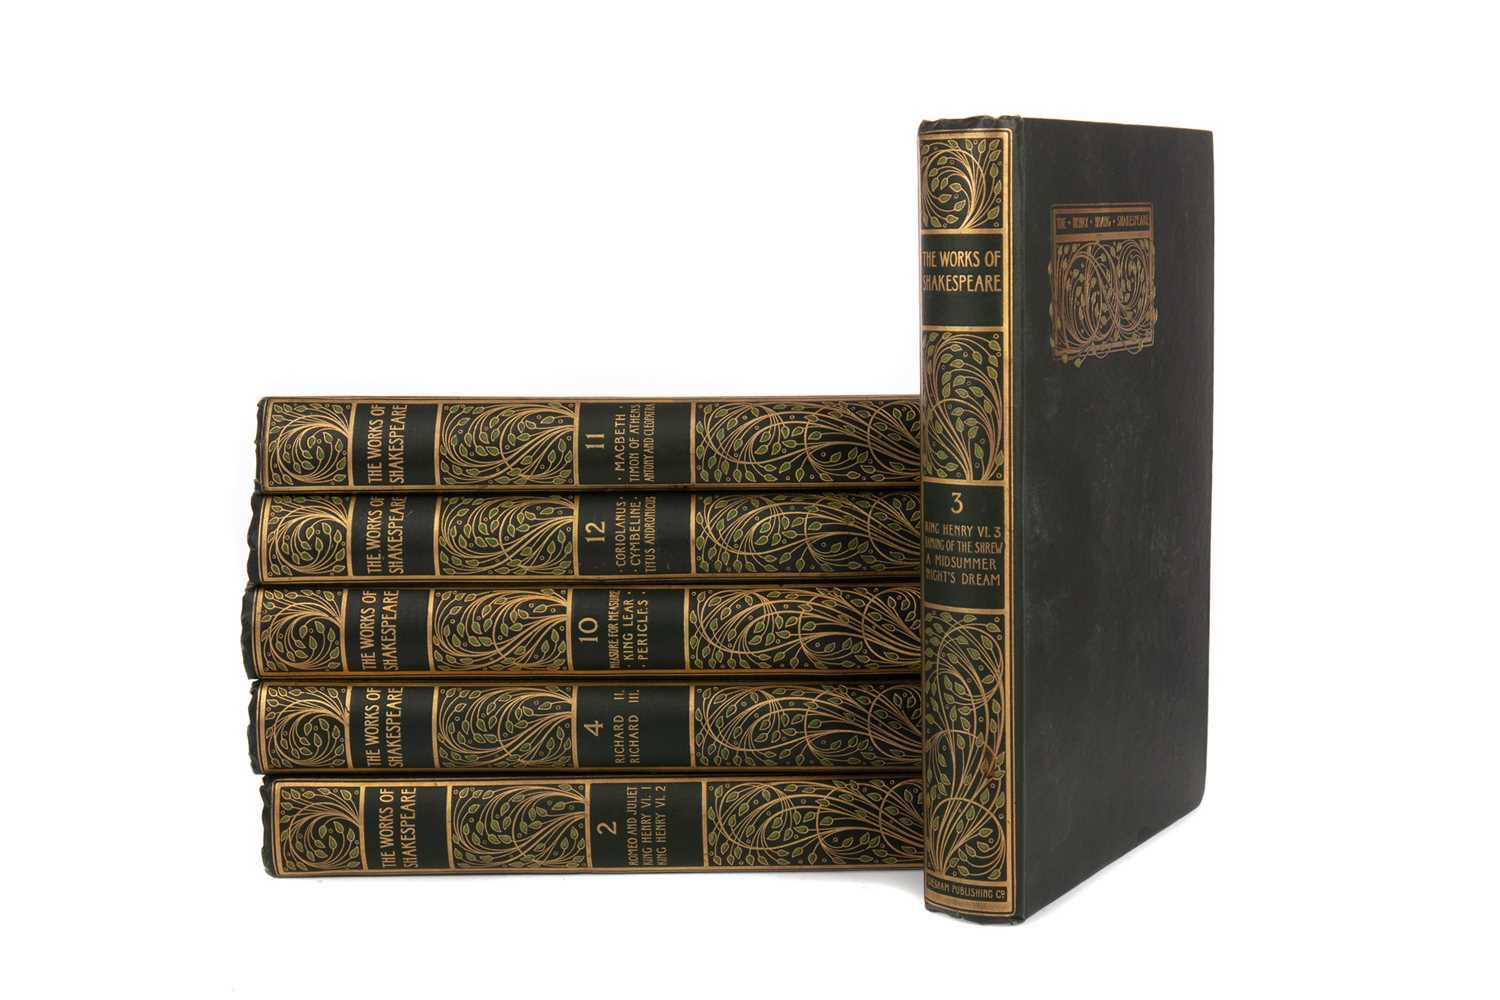 Lot 703 - A SET OF THE WORKS OF SHAKESPEARE